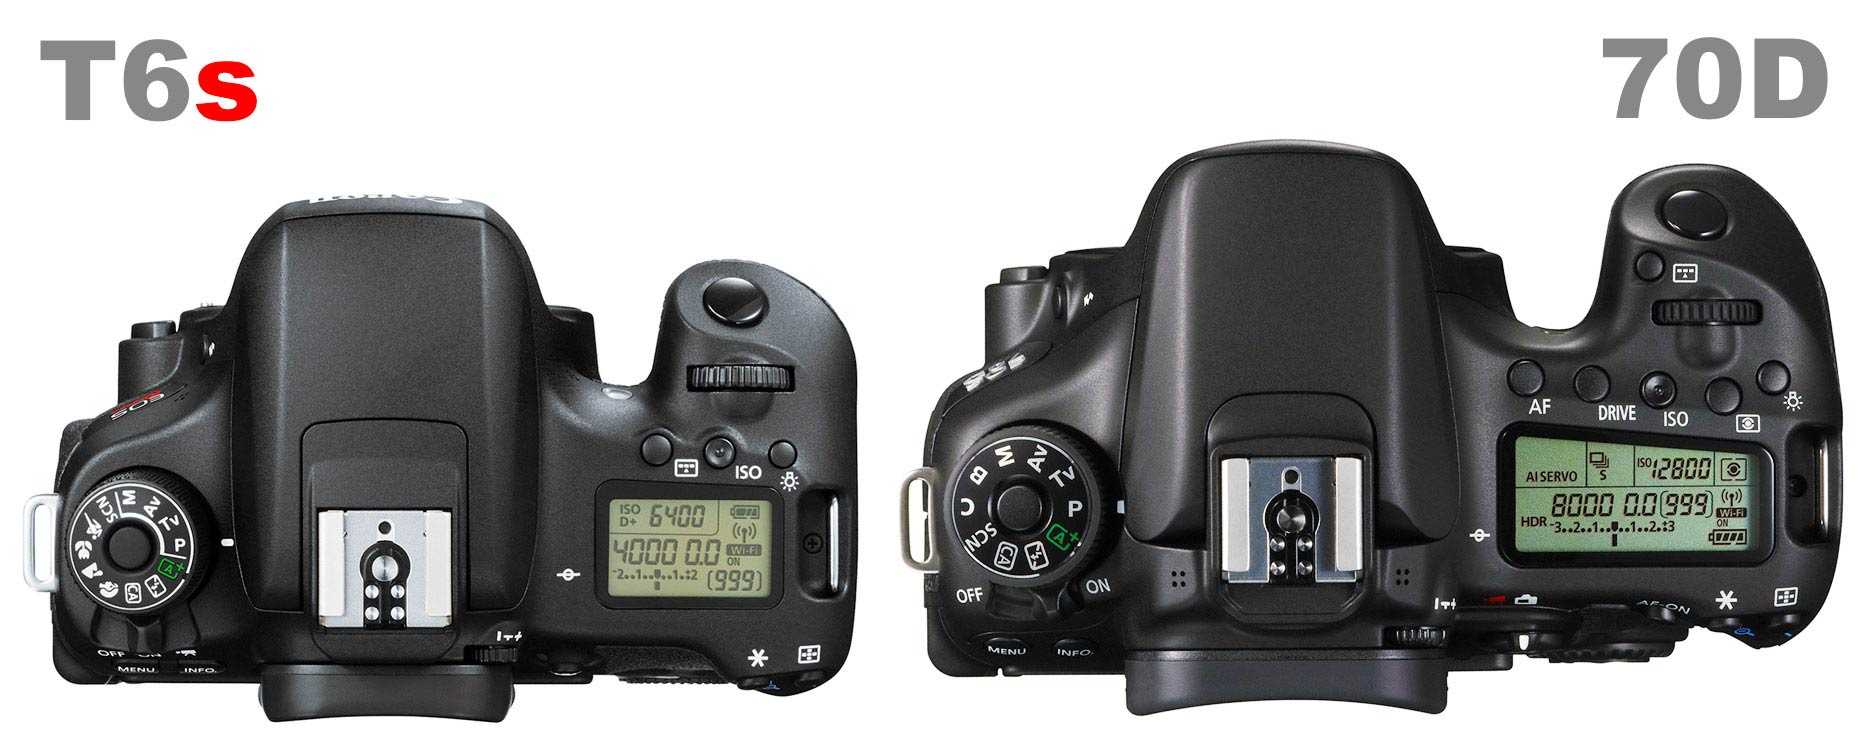 Camera Canon Dslr Camera 70d canon t6s vs 70d which should you buy light and matter like the has a top mounted lcd display for important setting information